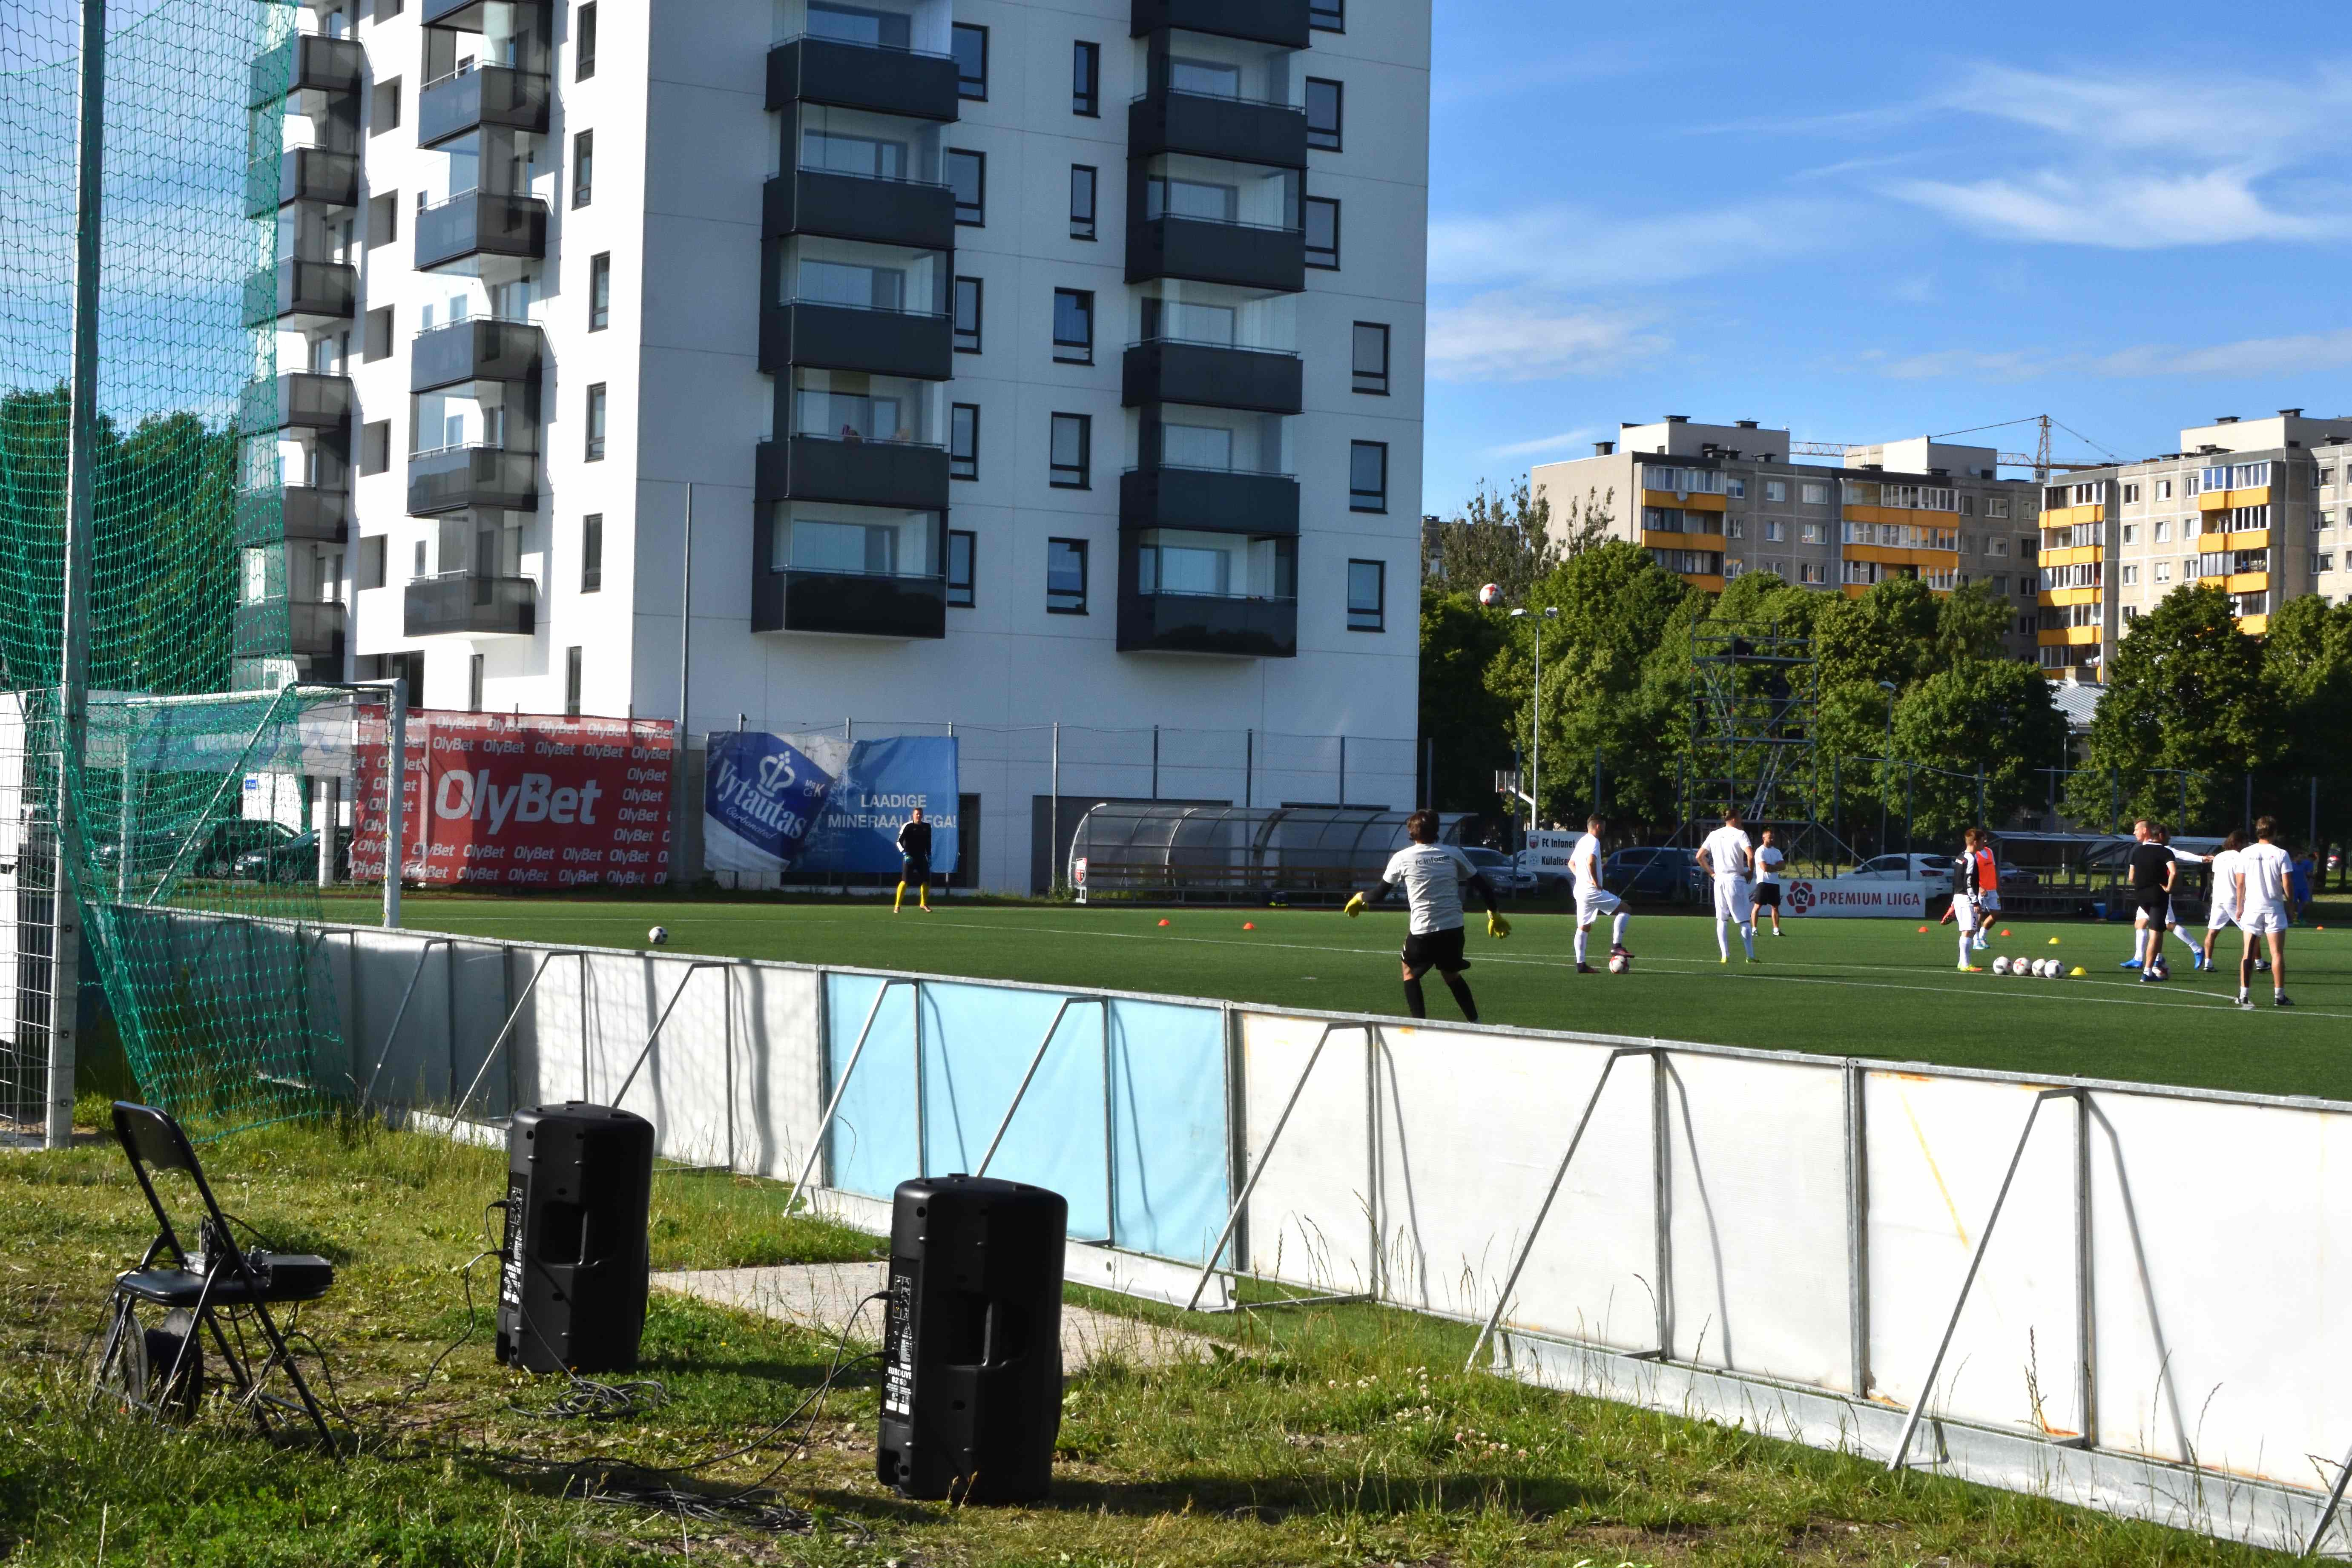 Football Nation 7/55 - FCI Tallinn 2-1 Tammeka - Estonia